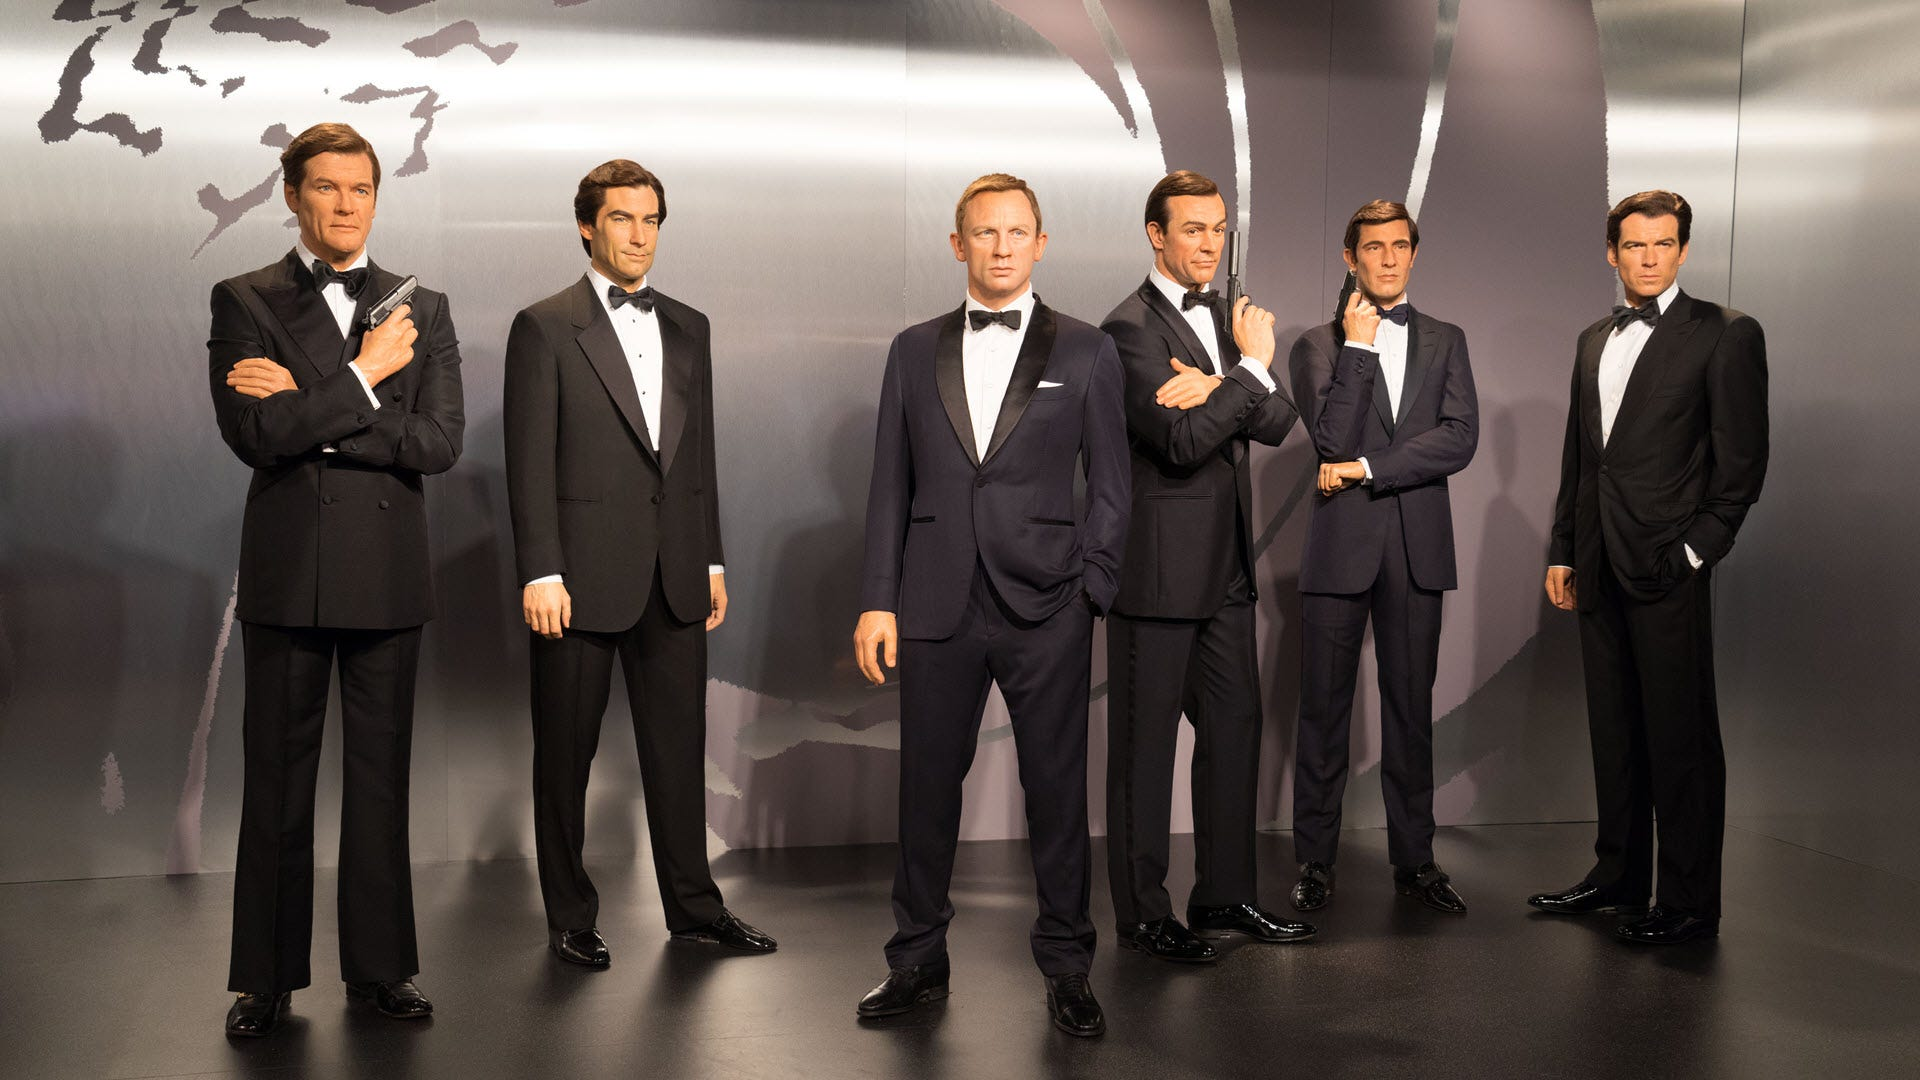 All the different versions of James Bond standing in front of a movie background.